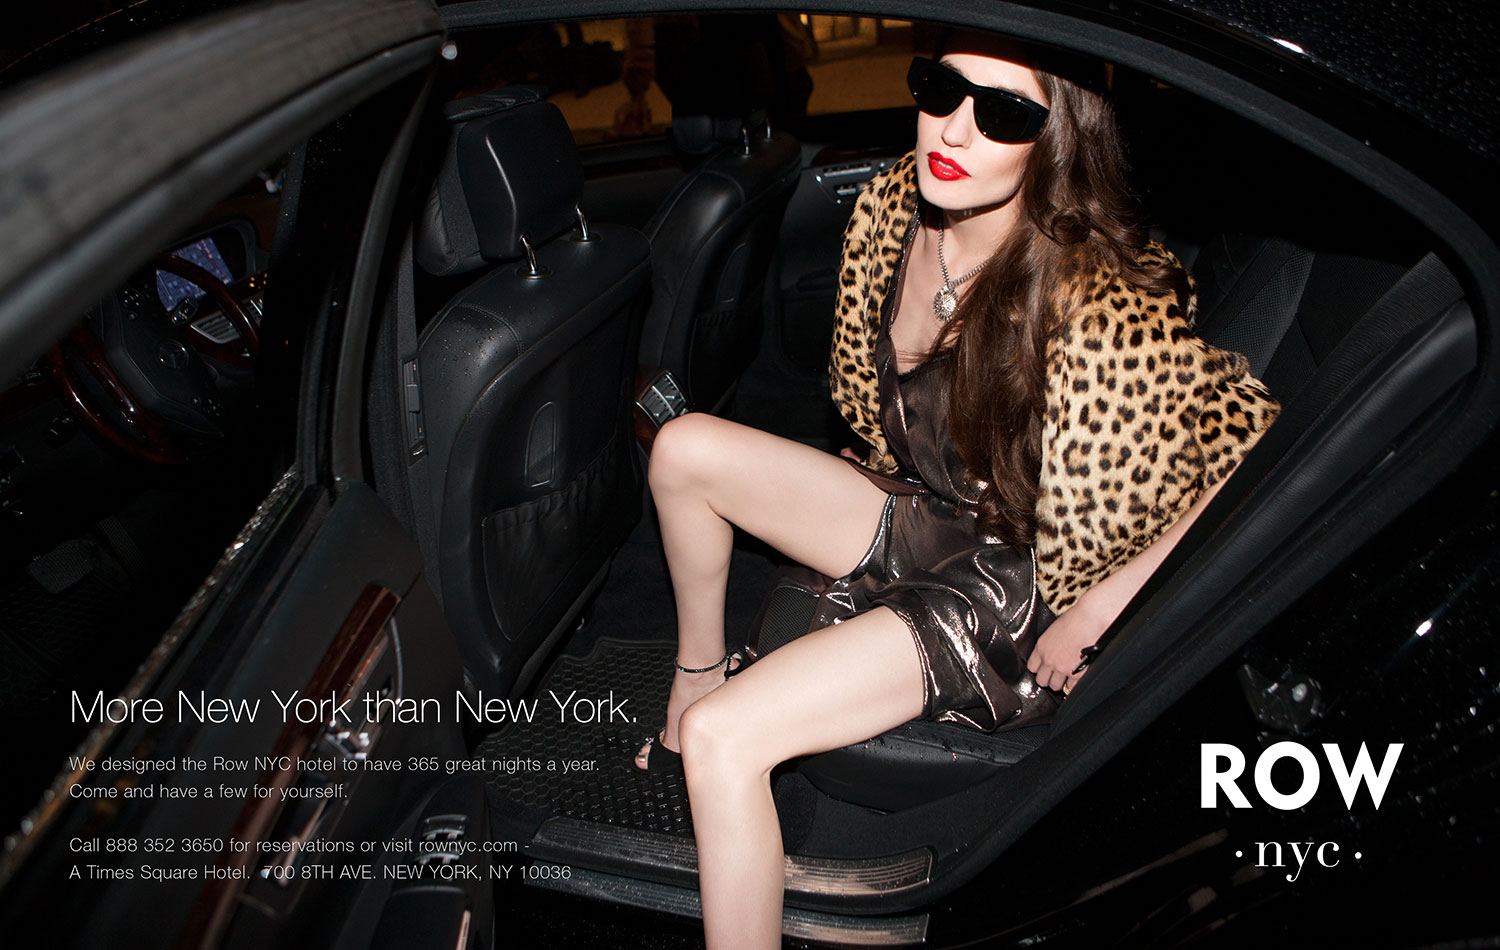 Model getting out of car for Row NYC ad